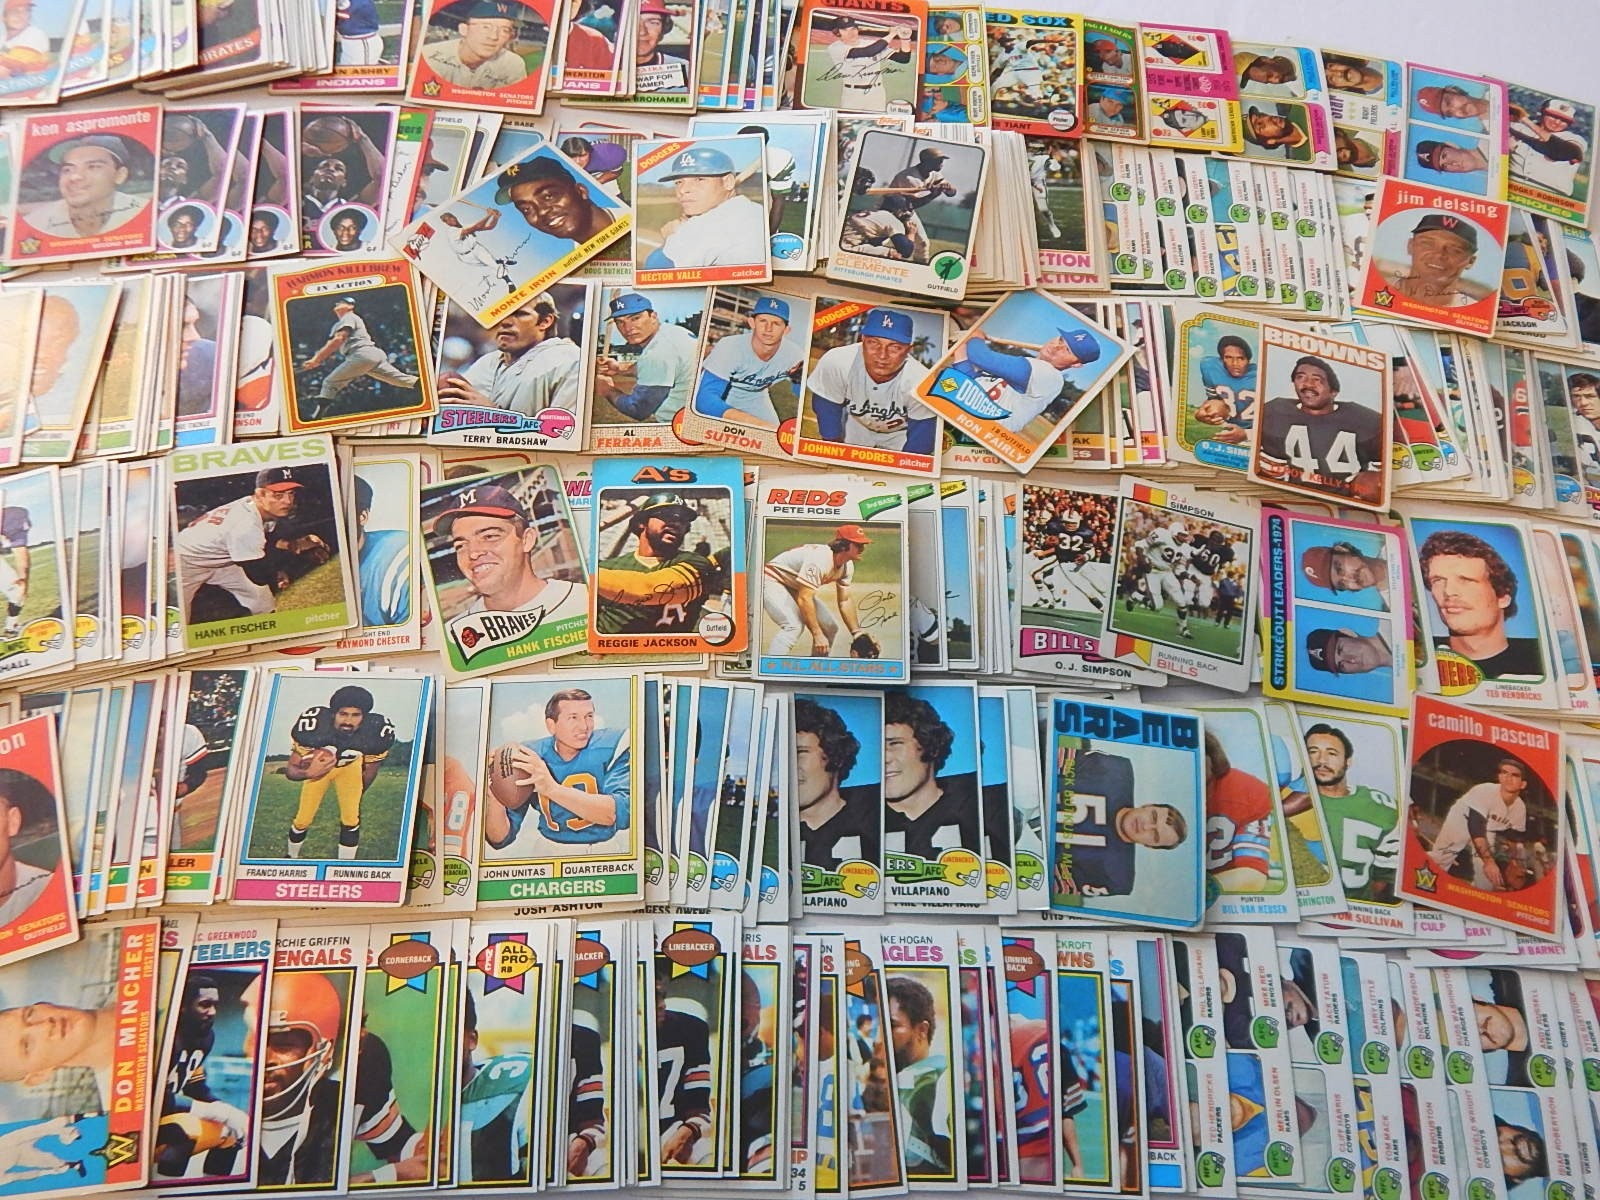 Large Vintage Baseball and Football Card Collection from 1950s to Early 1980s